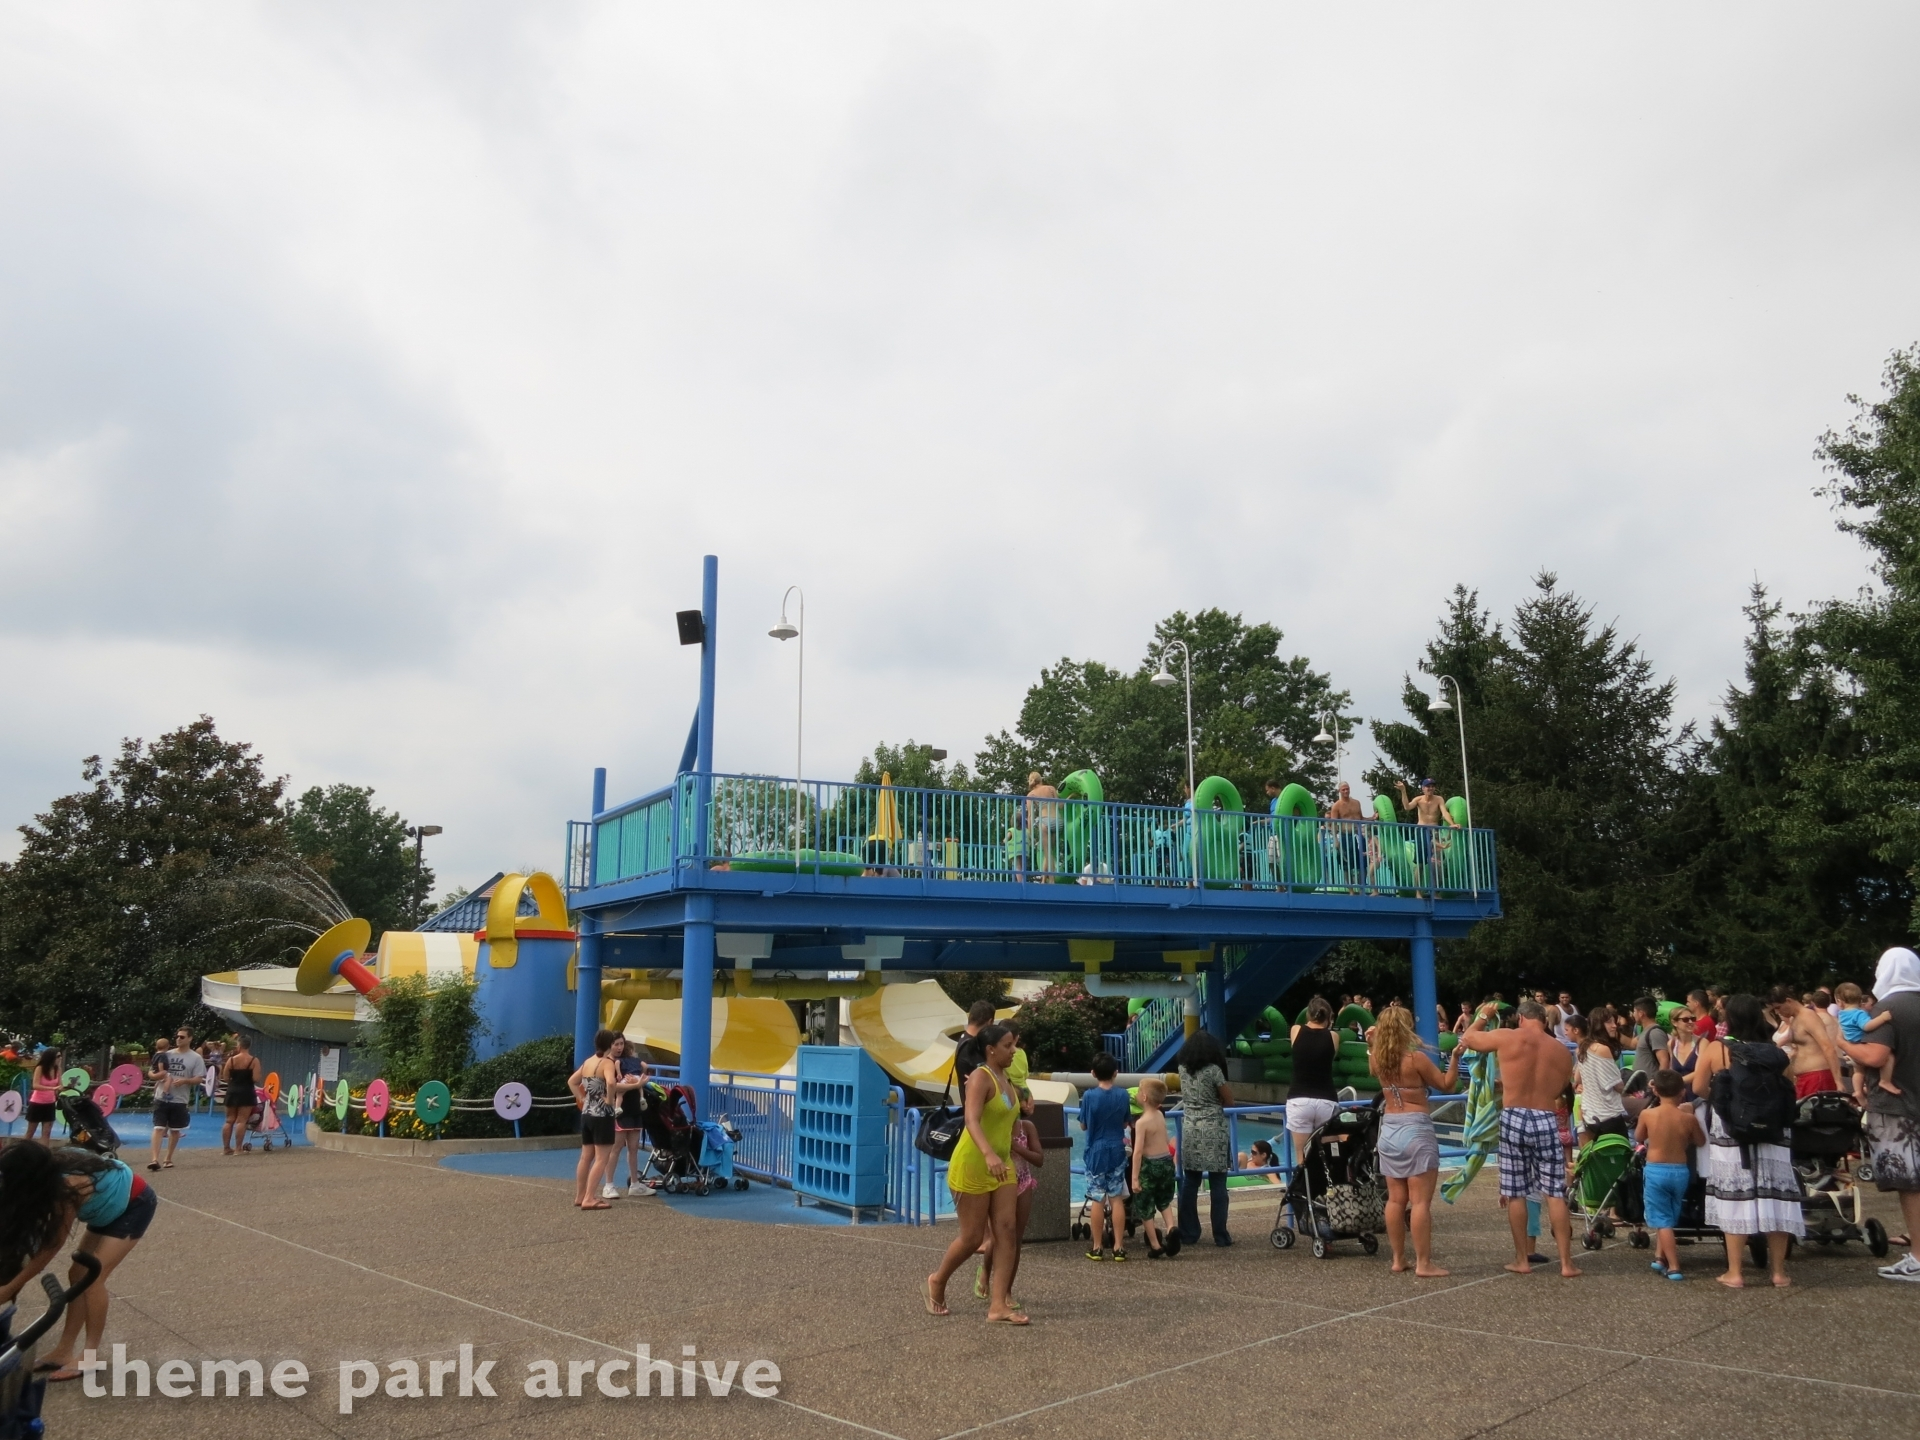 Slimey's Chutes at Sesame Place